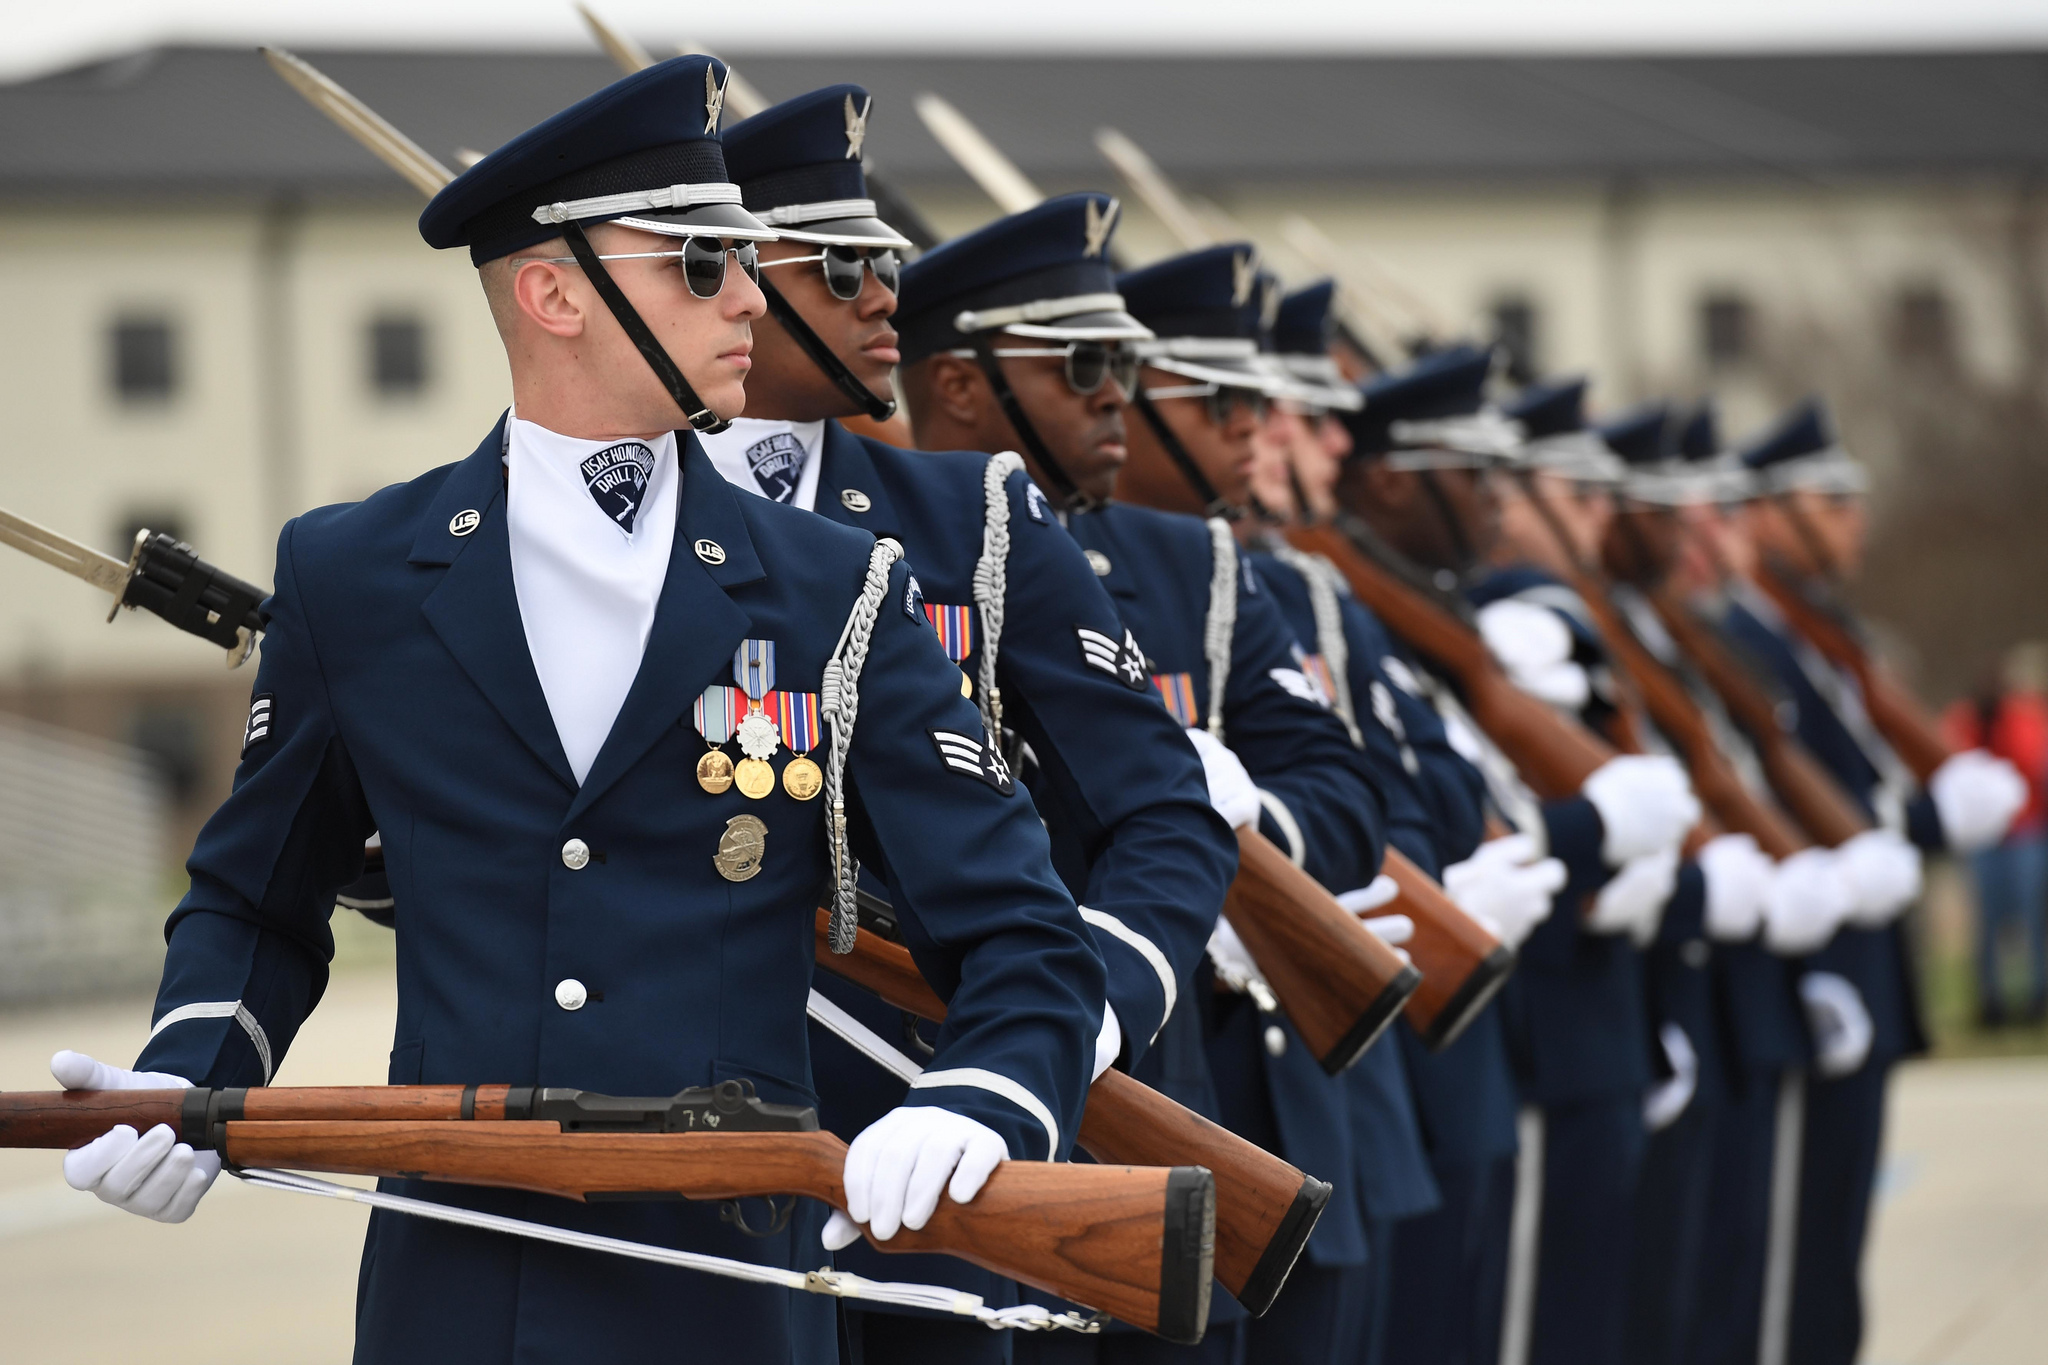 The U.S. Air Force Honor Guard Drill Team debuts their 2019 routine in front of Keesler leadership and 81st Training Group Airmen on the Levitow Training Support Facility drill pad at Keesler Air Force Base, Miss., Feb. 8, 2019. (Kemberly Groue/Air Force)